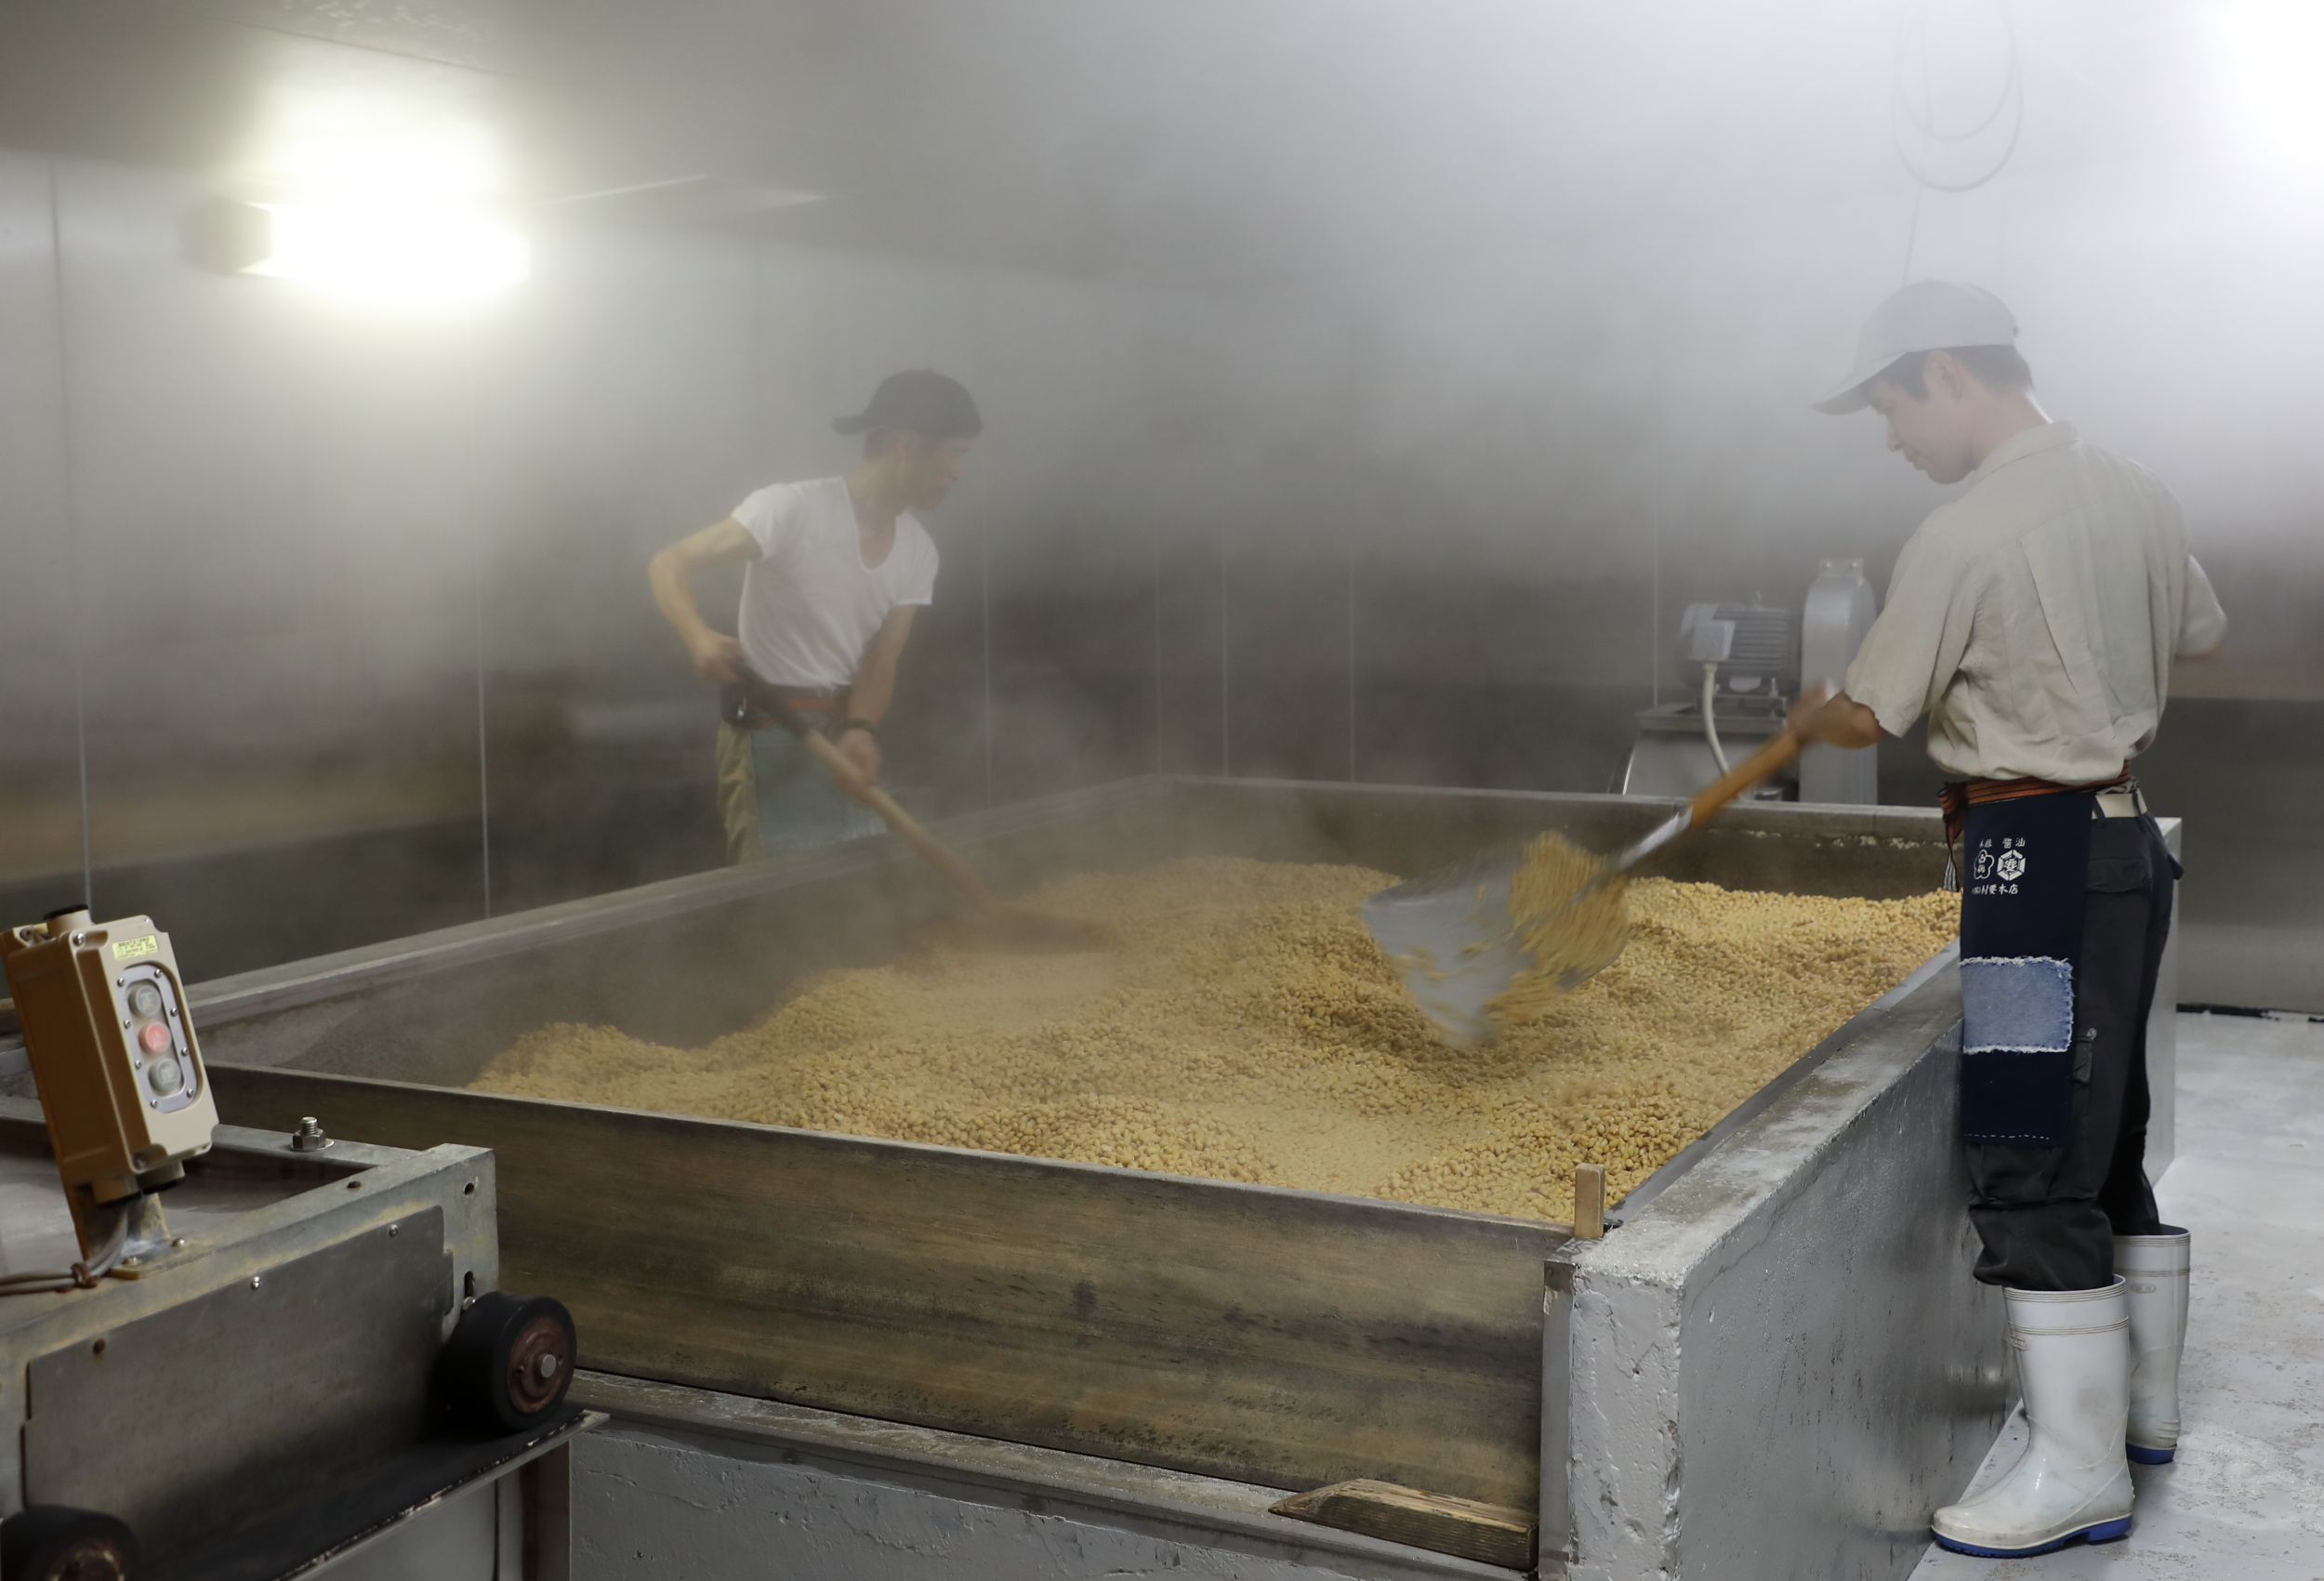 A key step in making soy sauce is carefully germinating the mixture of steamed soy beans, roasted wheat, and  koji-kin  mold spores to create  shoyu-koji , a crumbly dough-like malt that will become the essential flavor base of the soy sauce.